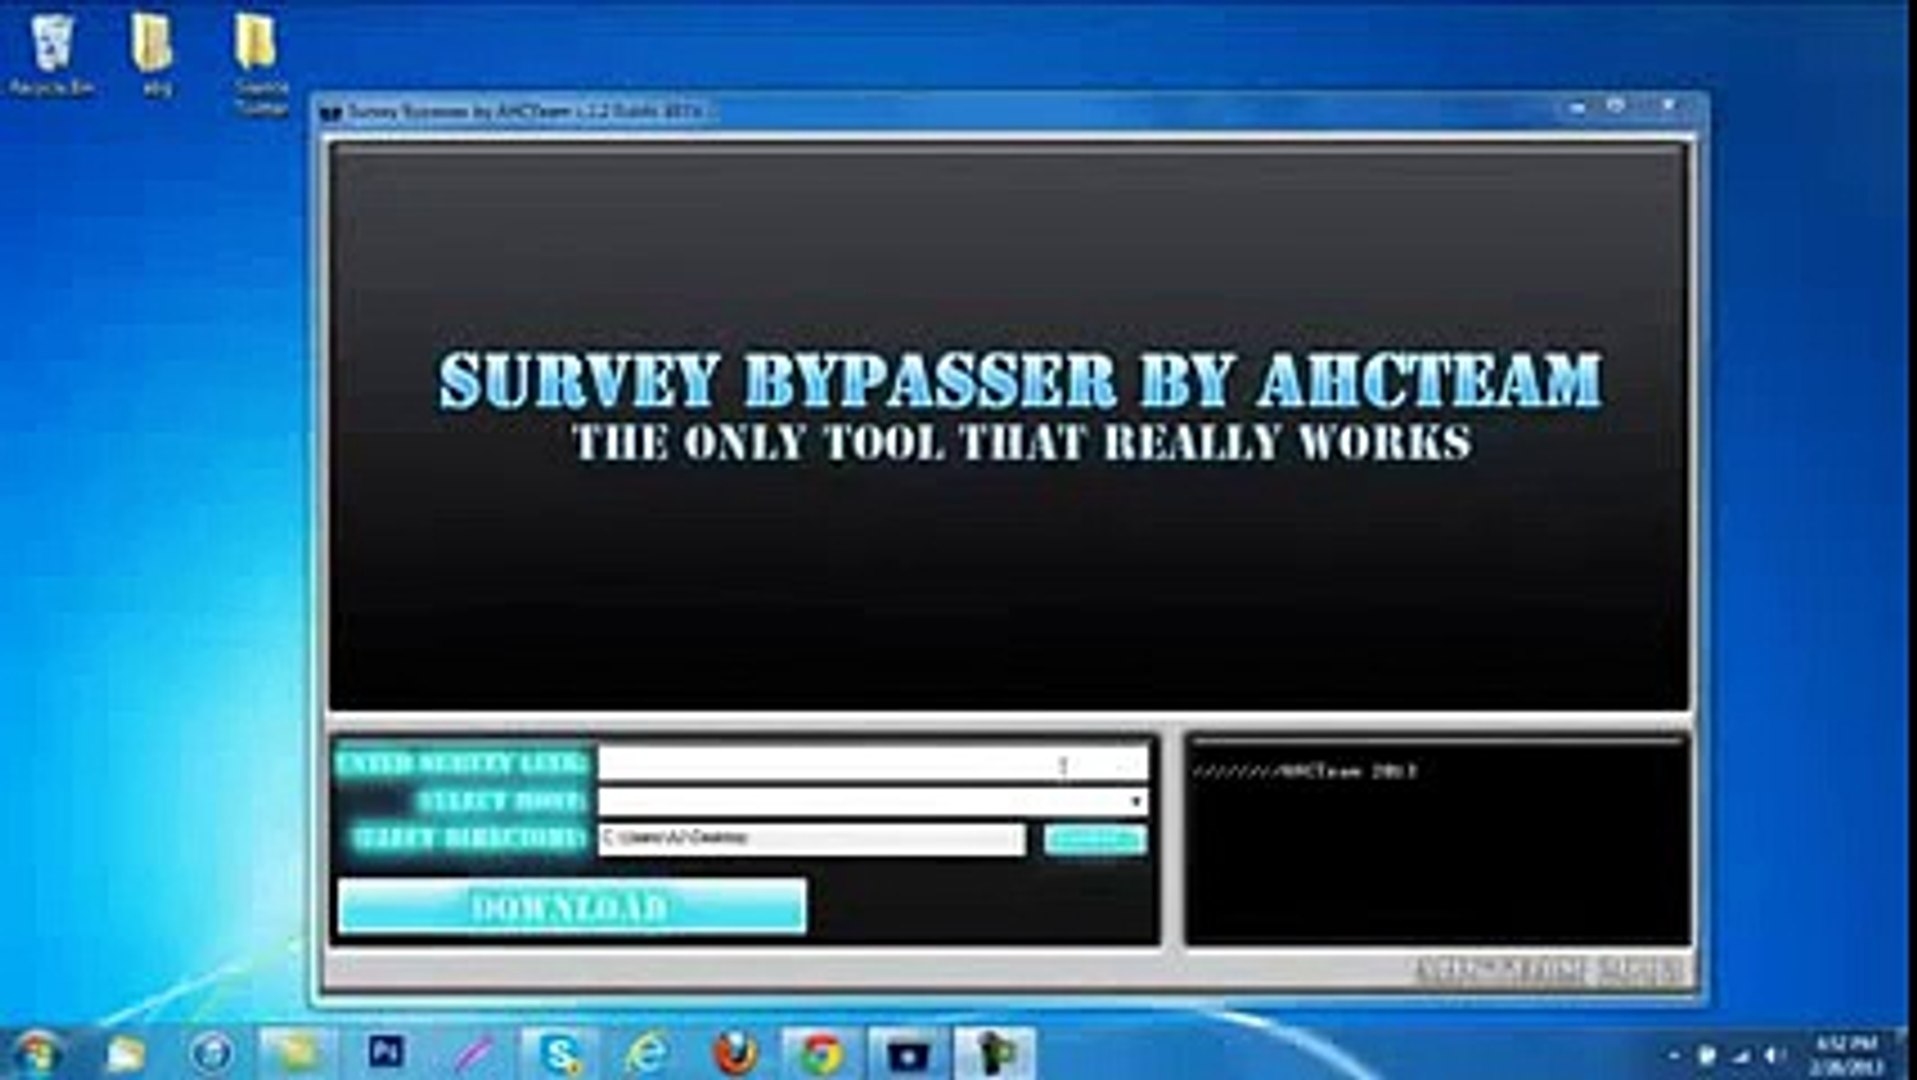 Fileice Online Survey Bypasser Tool 2017.